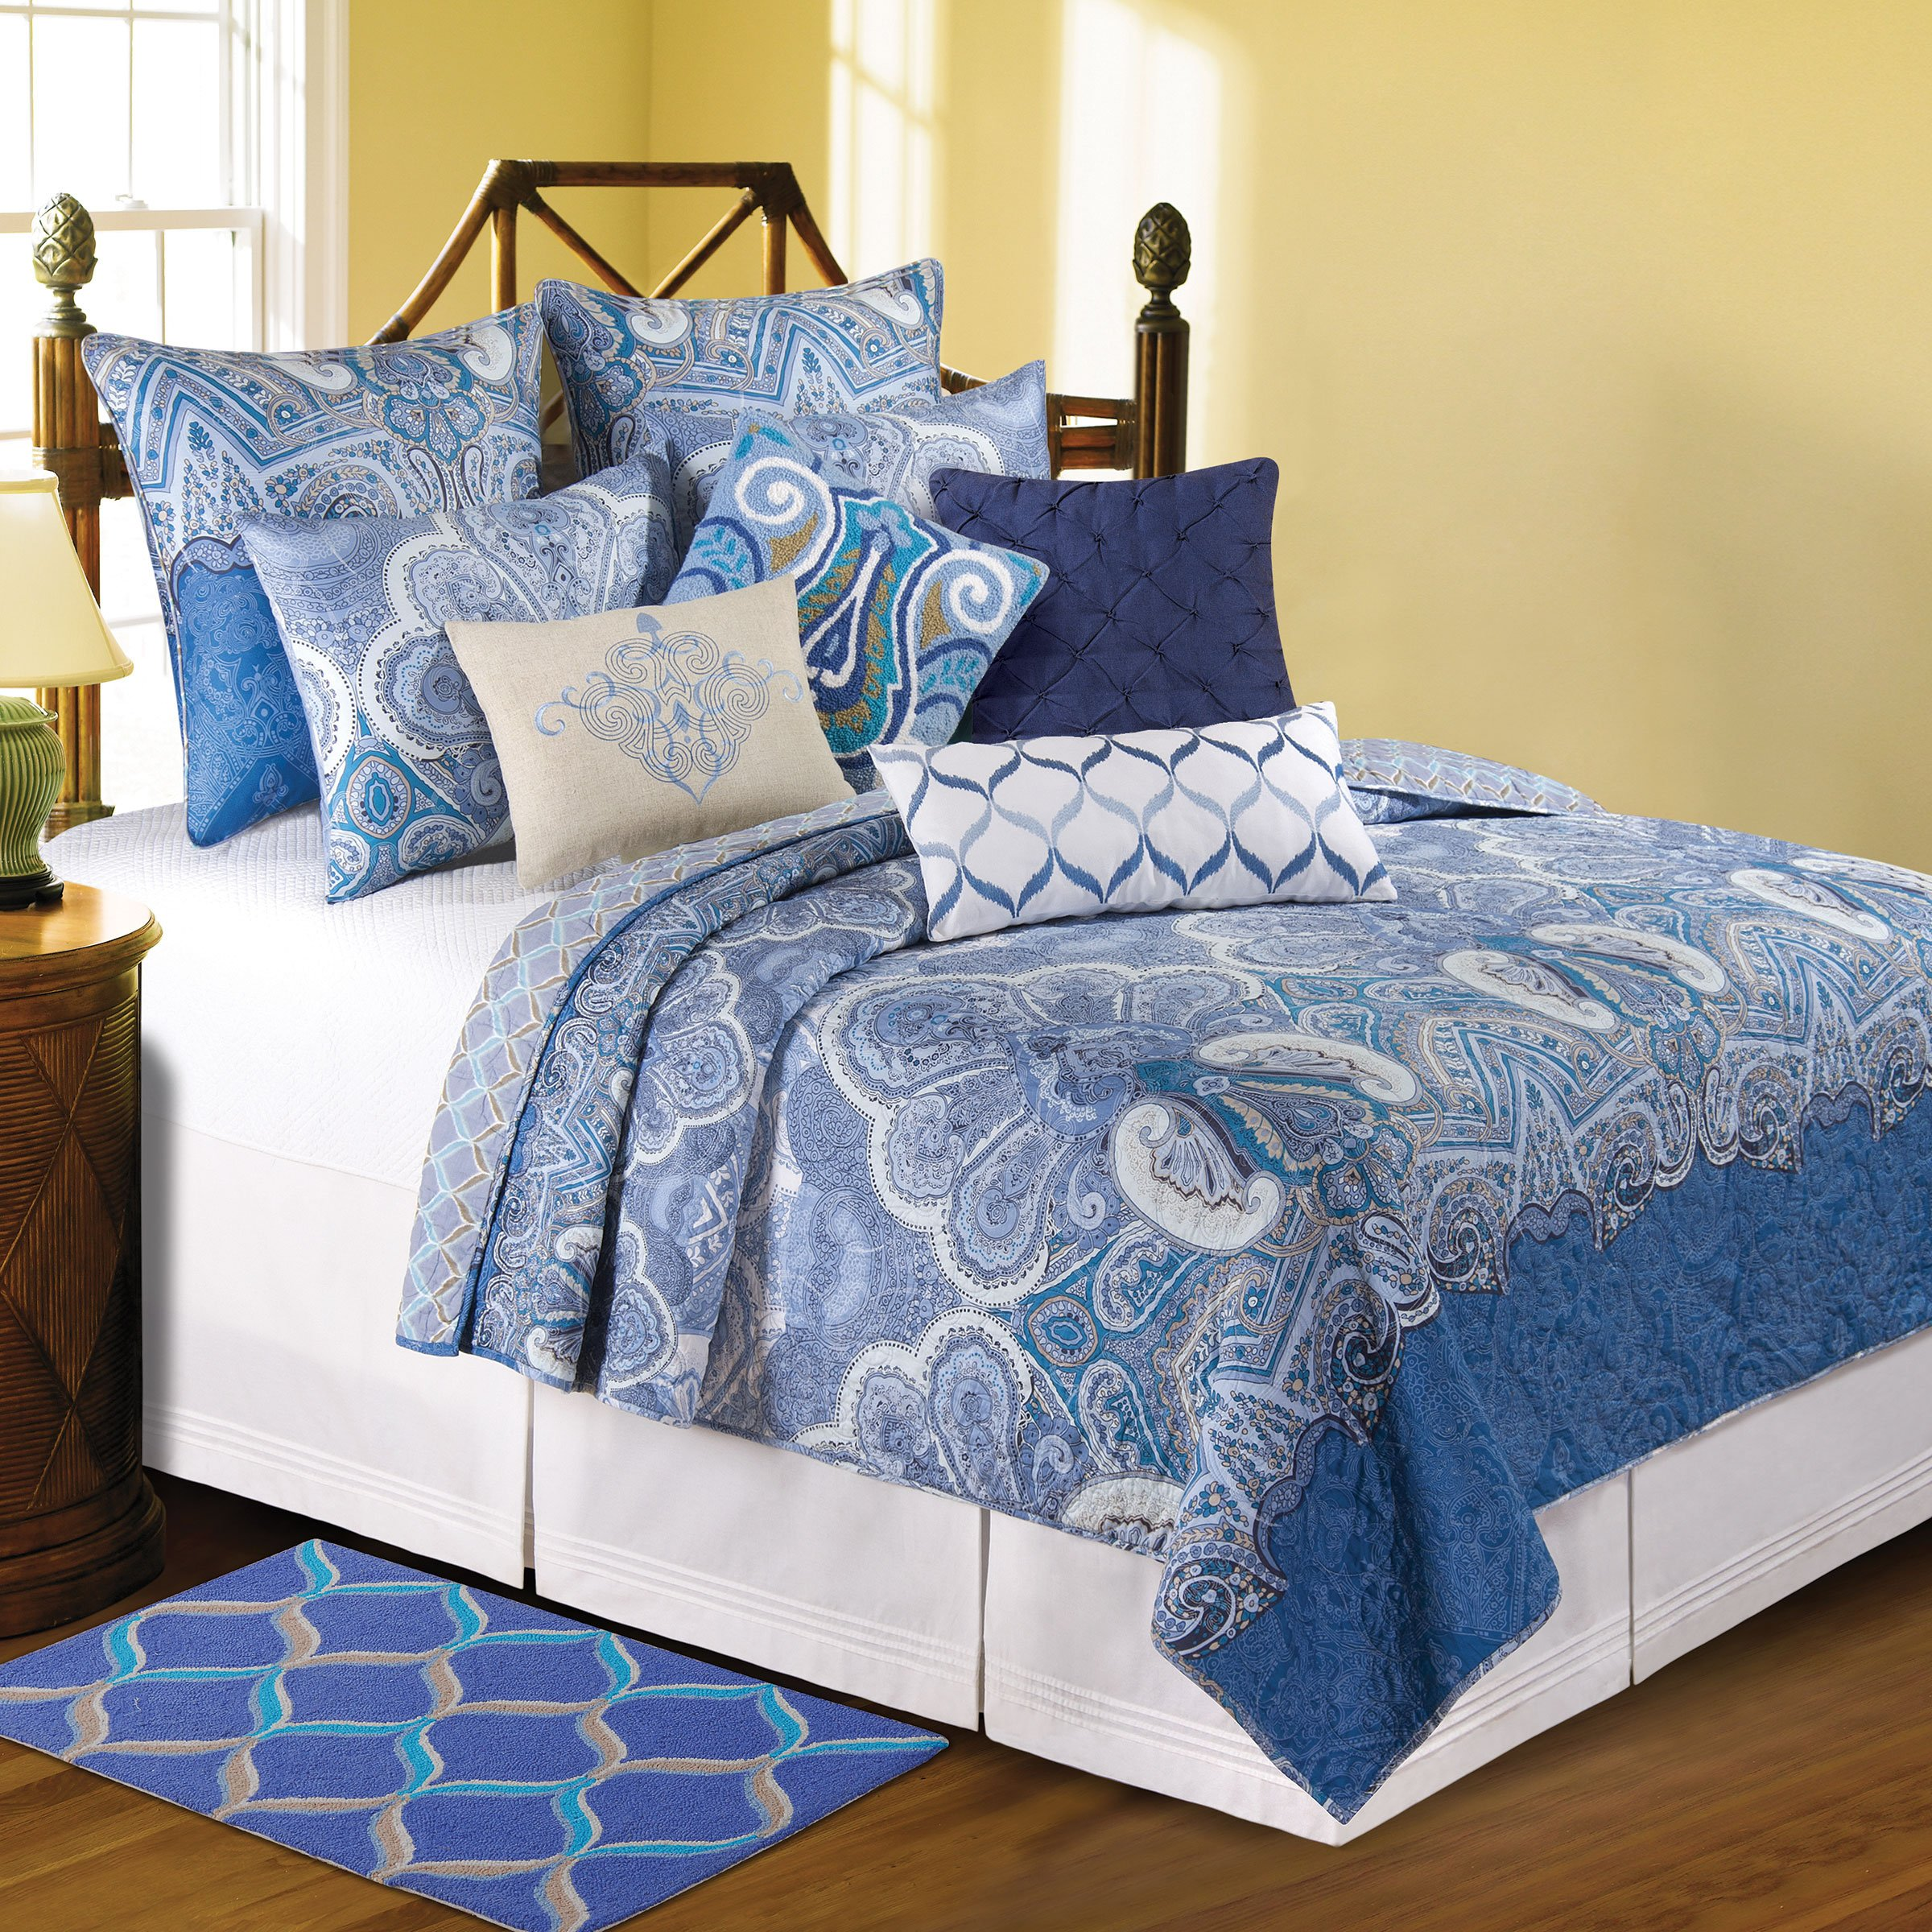 C&F Home Daphne Quilt, Full/Queen, Blue/White by C&F Home